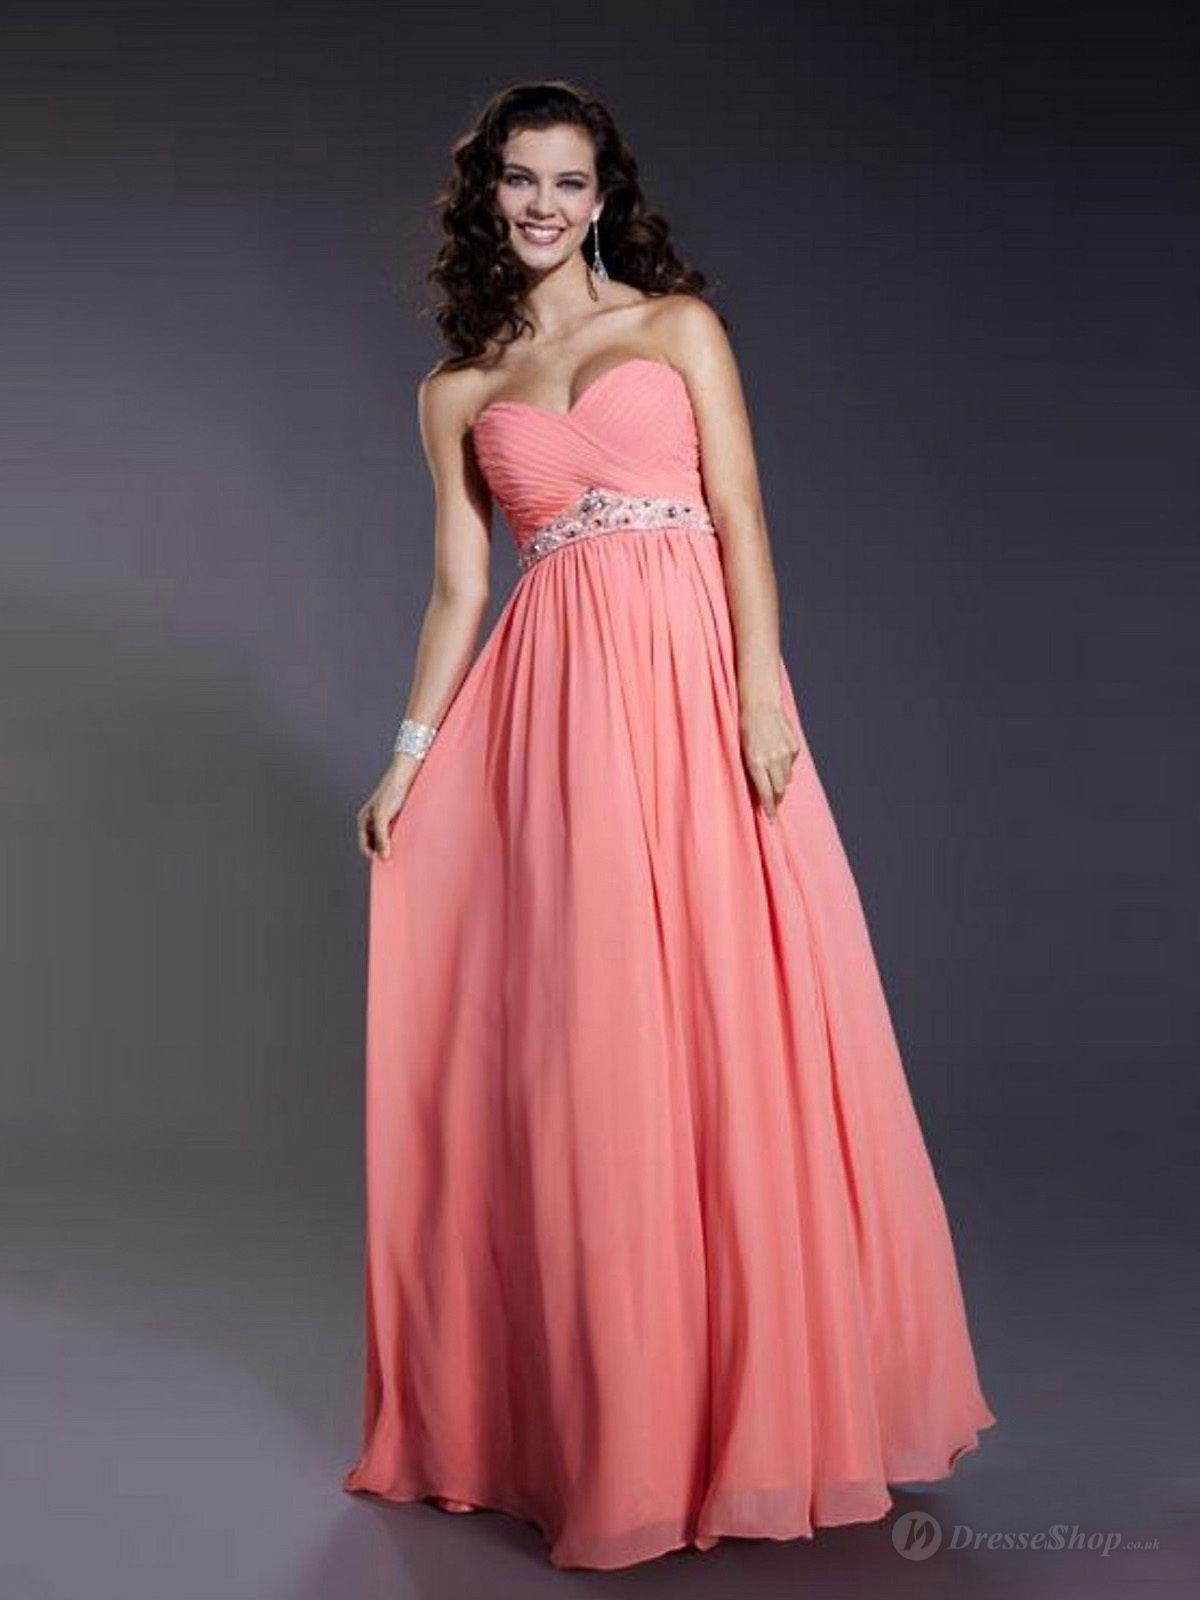 Bridesmaid dress for all shapes | anniversary/ wedding help ...